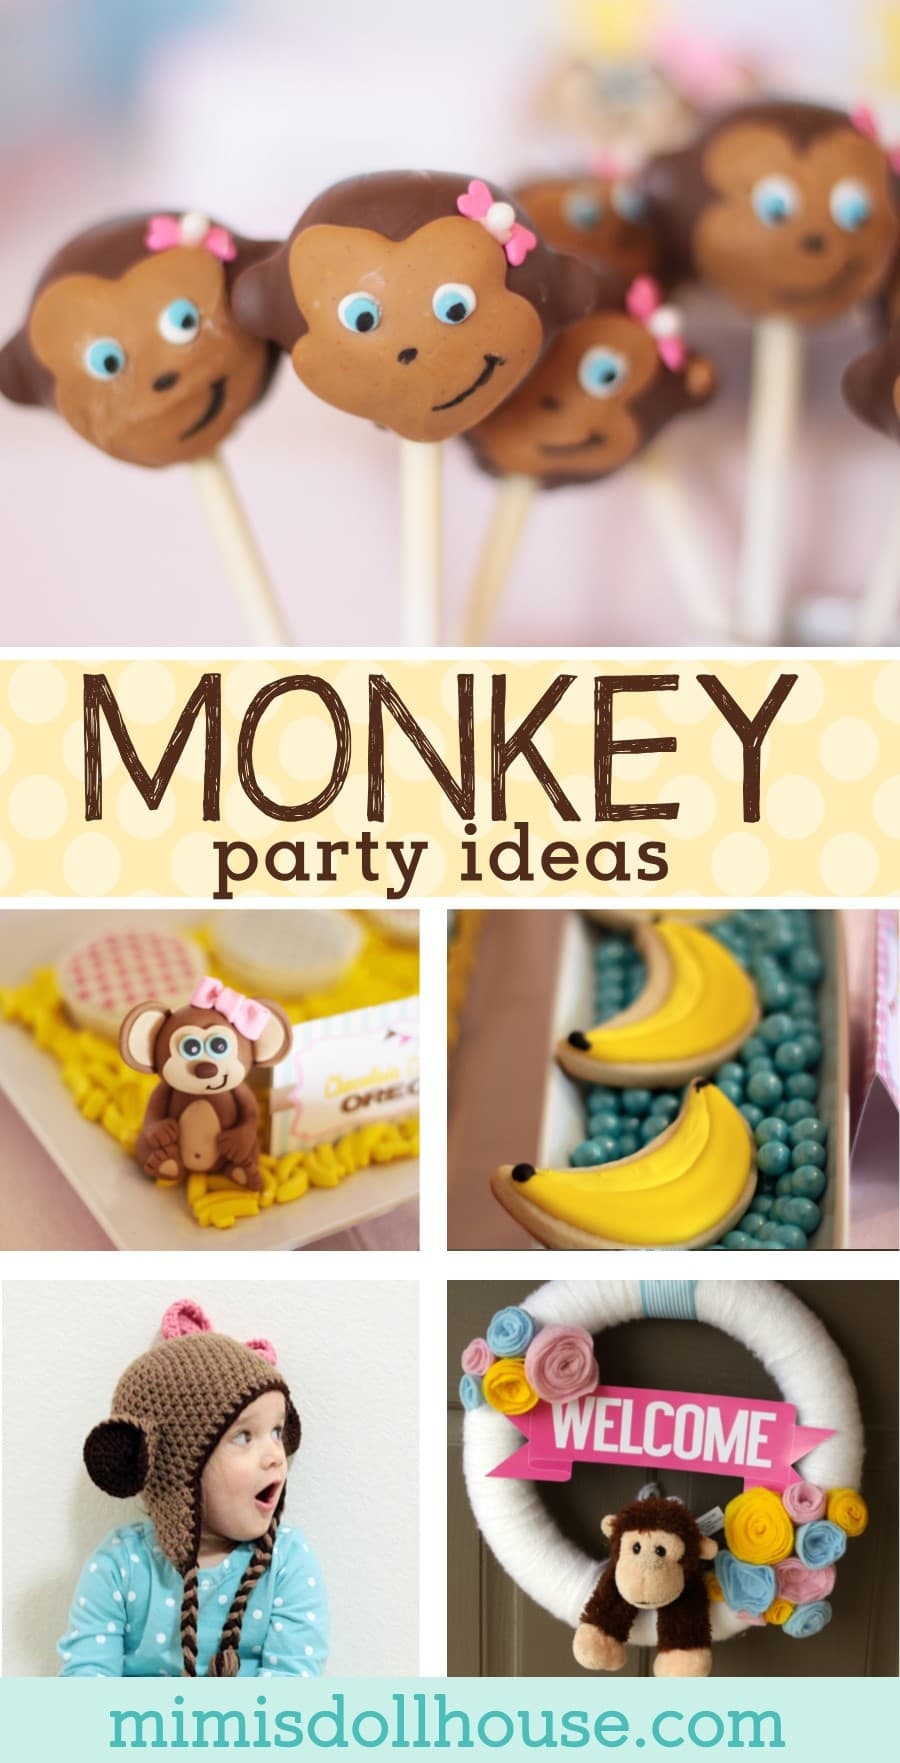 Monkey Party: Curious Emma is Turning Three! Let's Go Bananas with this cute little girly Monkey Party!! Looking for more Monkey party ideas? Be sure to check out these monkey party activities, this Monkey headband tutorial and this diy ruffled tableskirt.  #party #parties #partyideas #monkey #kids #birthday #diy #baking